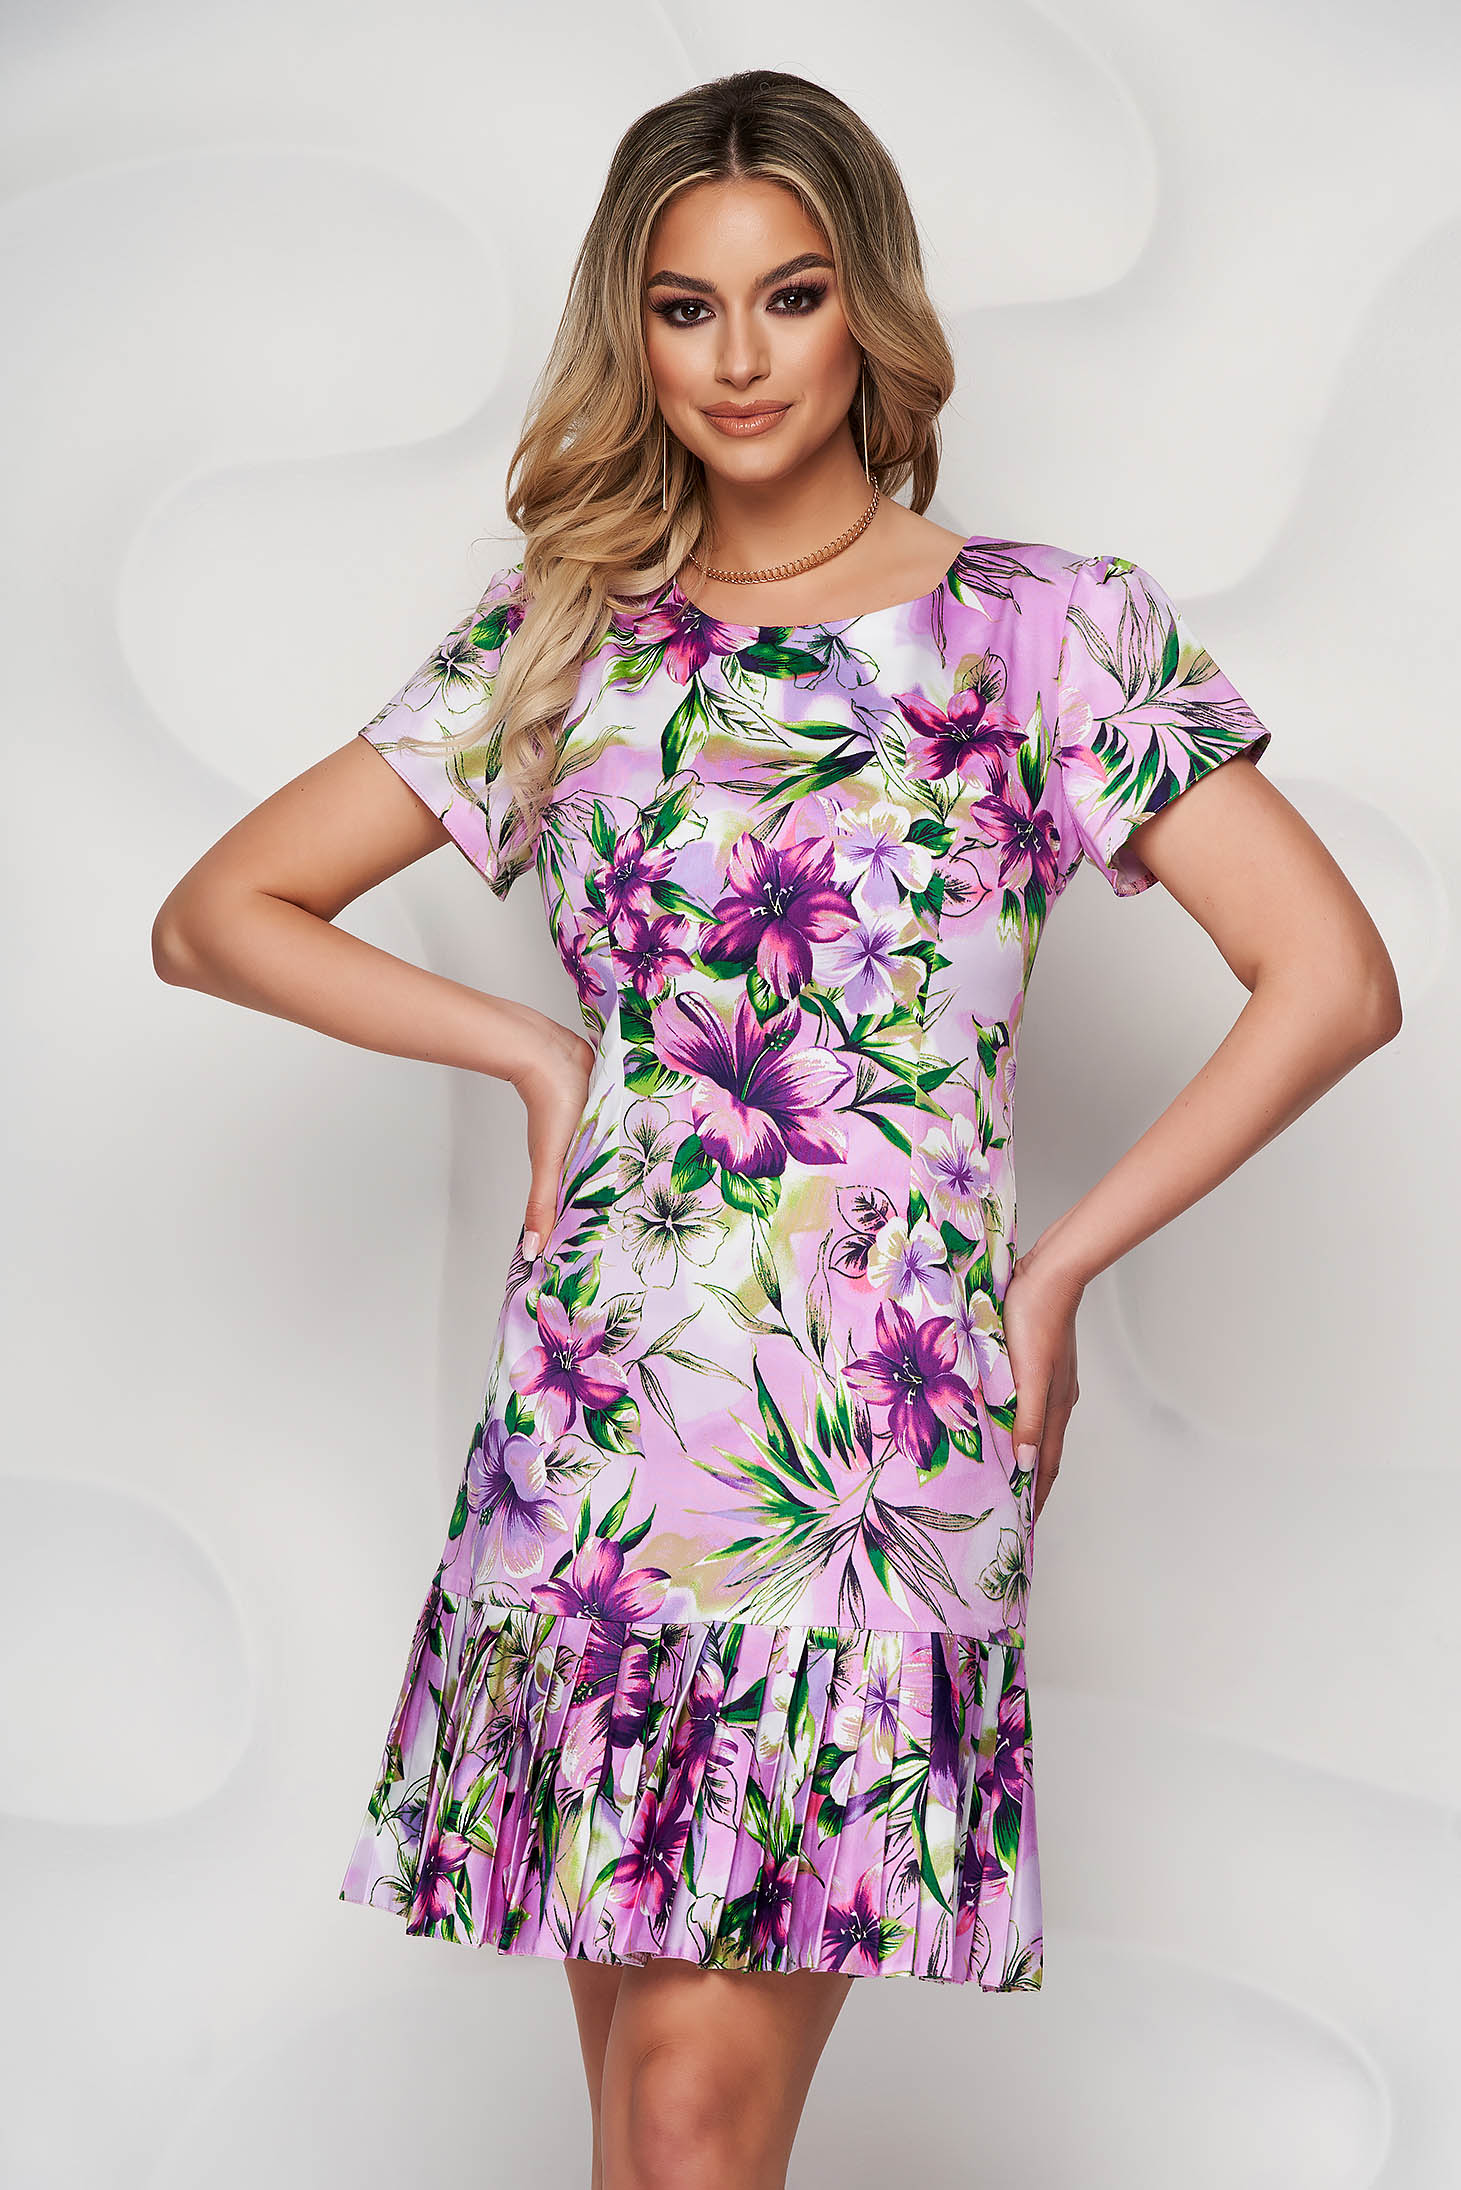 Lila dress with rounded cleavage with floral print pleats of material midi